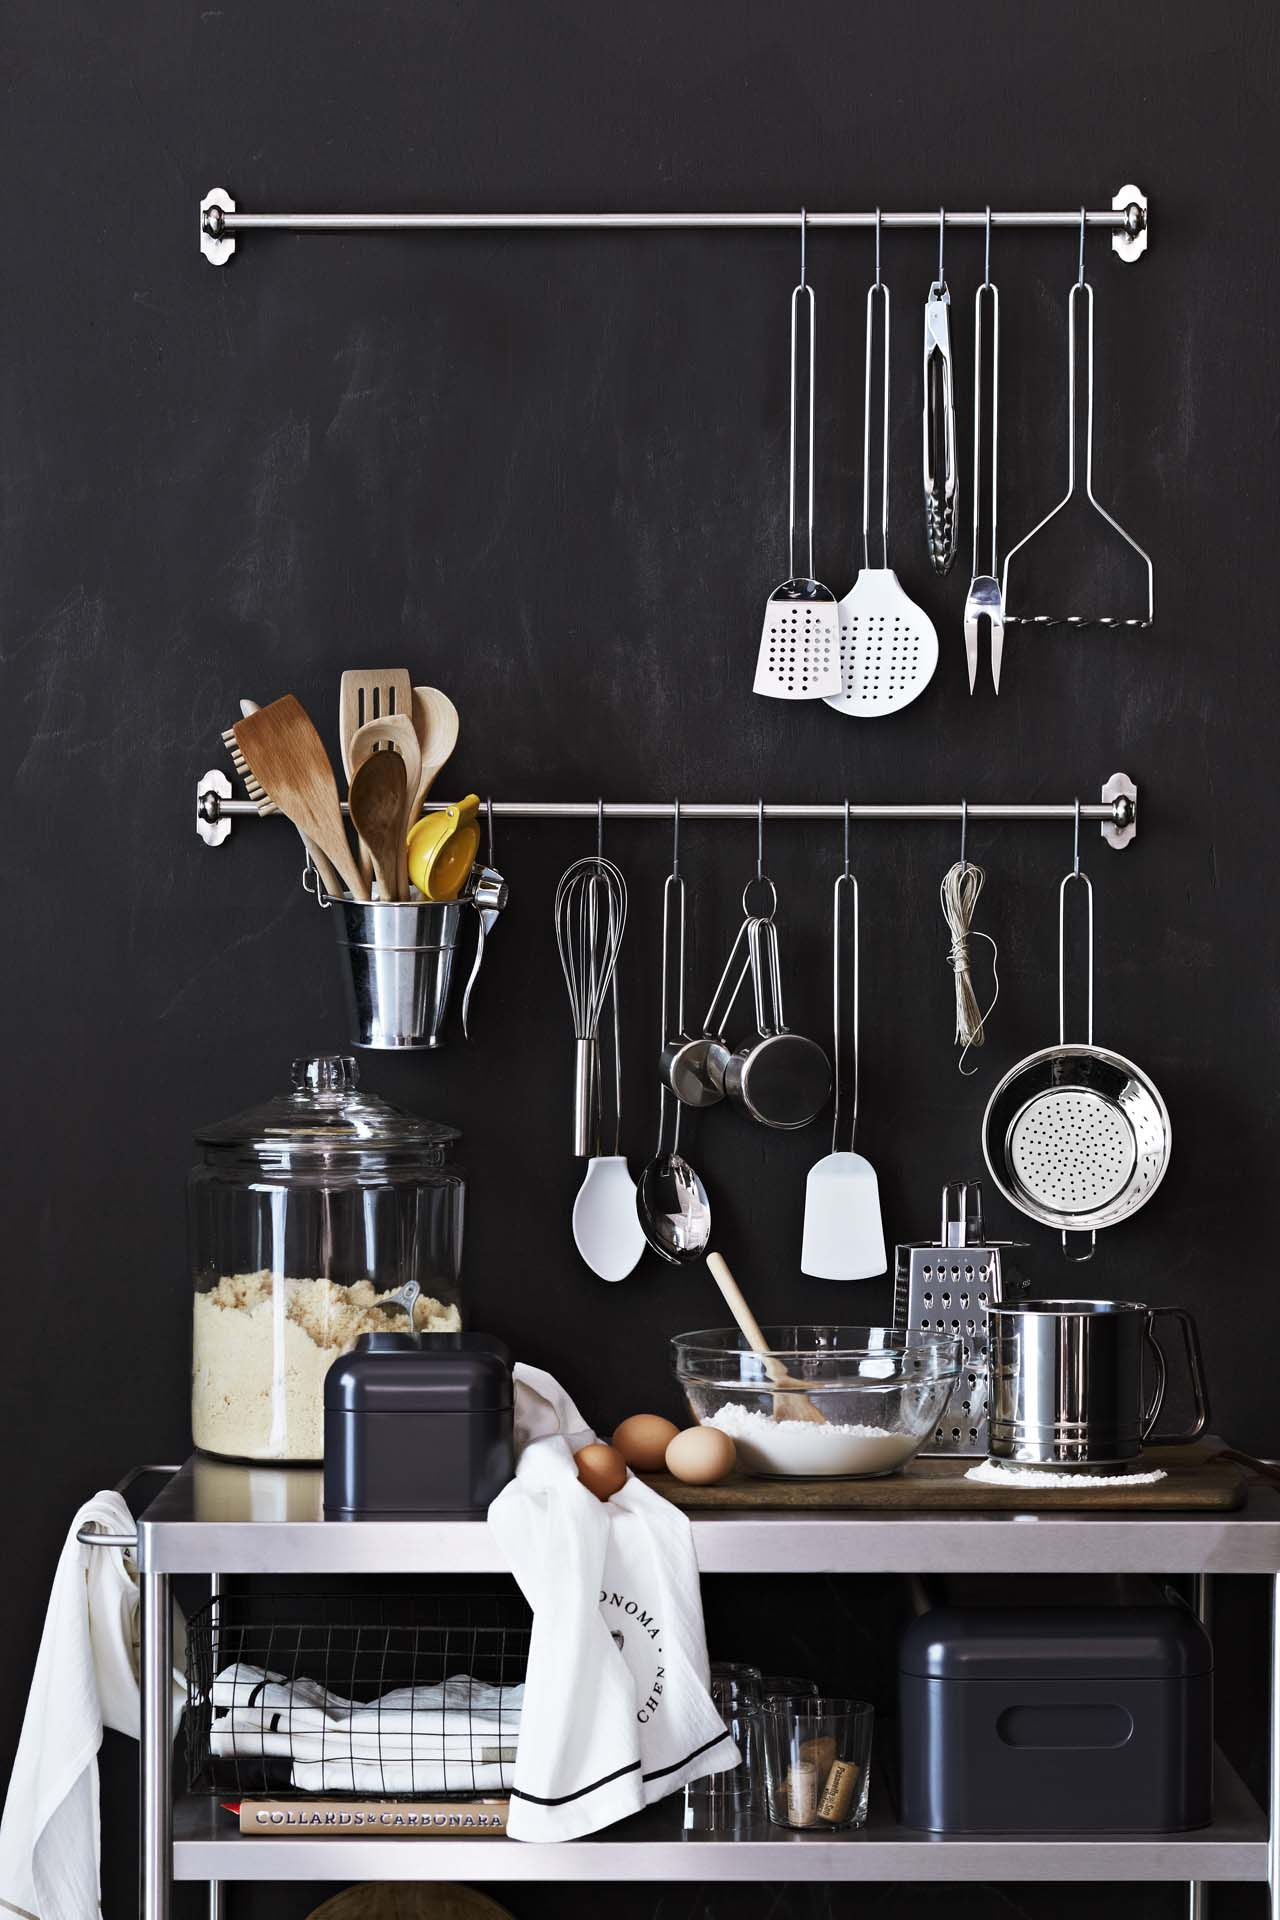 kitchen tool organization